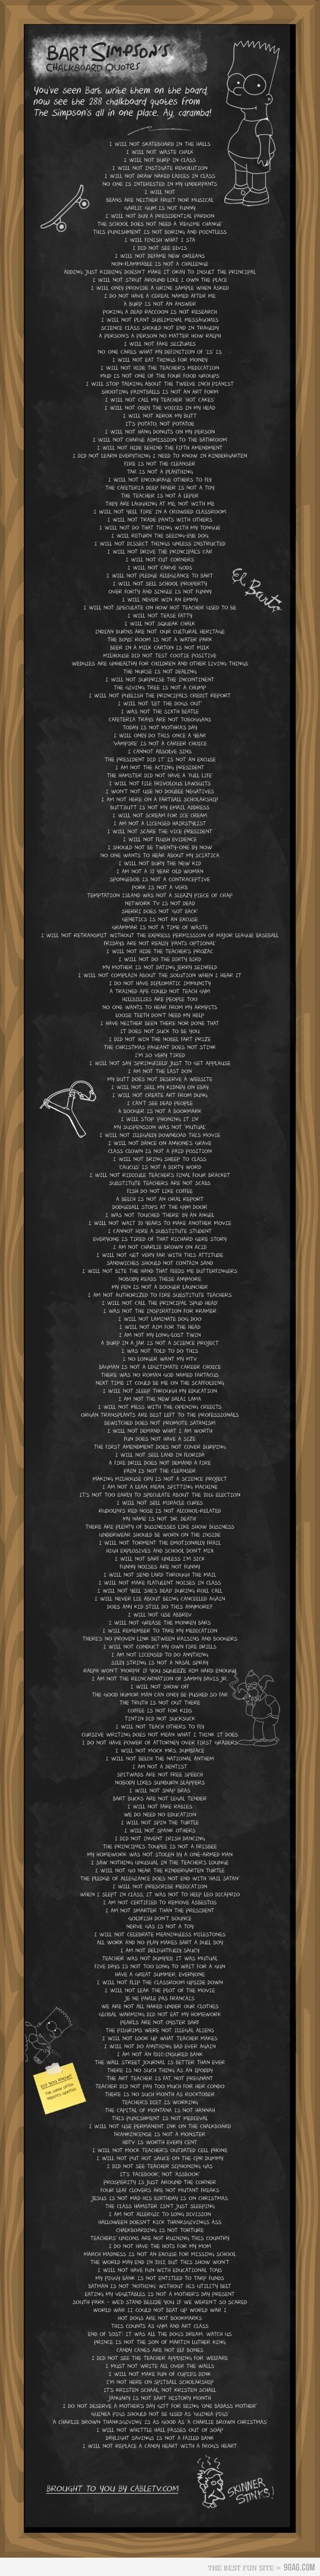 Every single one of Bart Simpson's chalkboard quotes